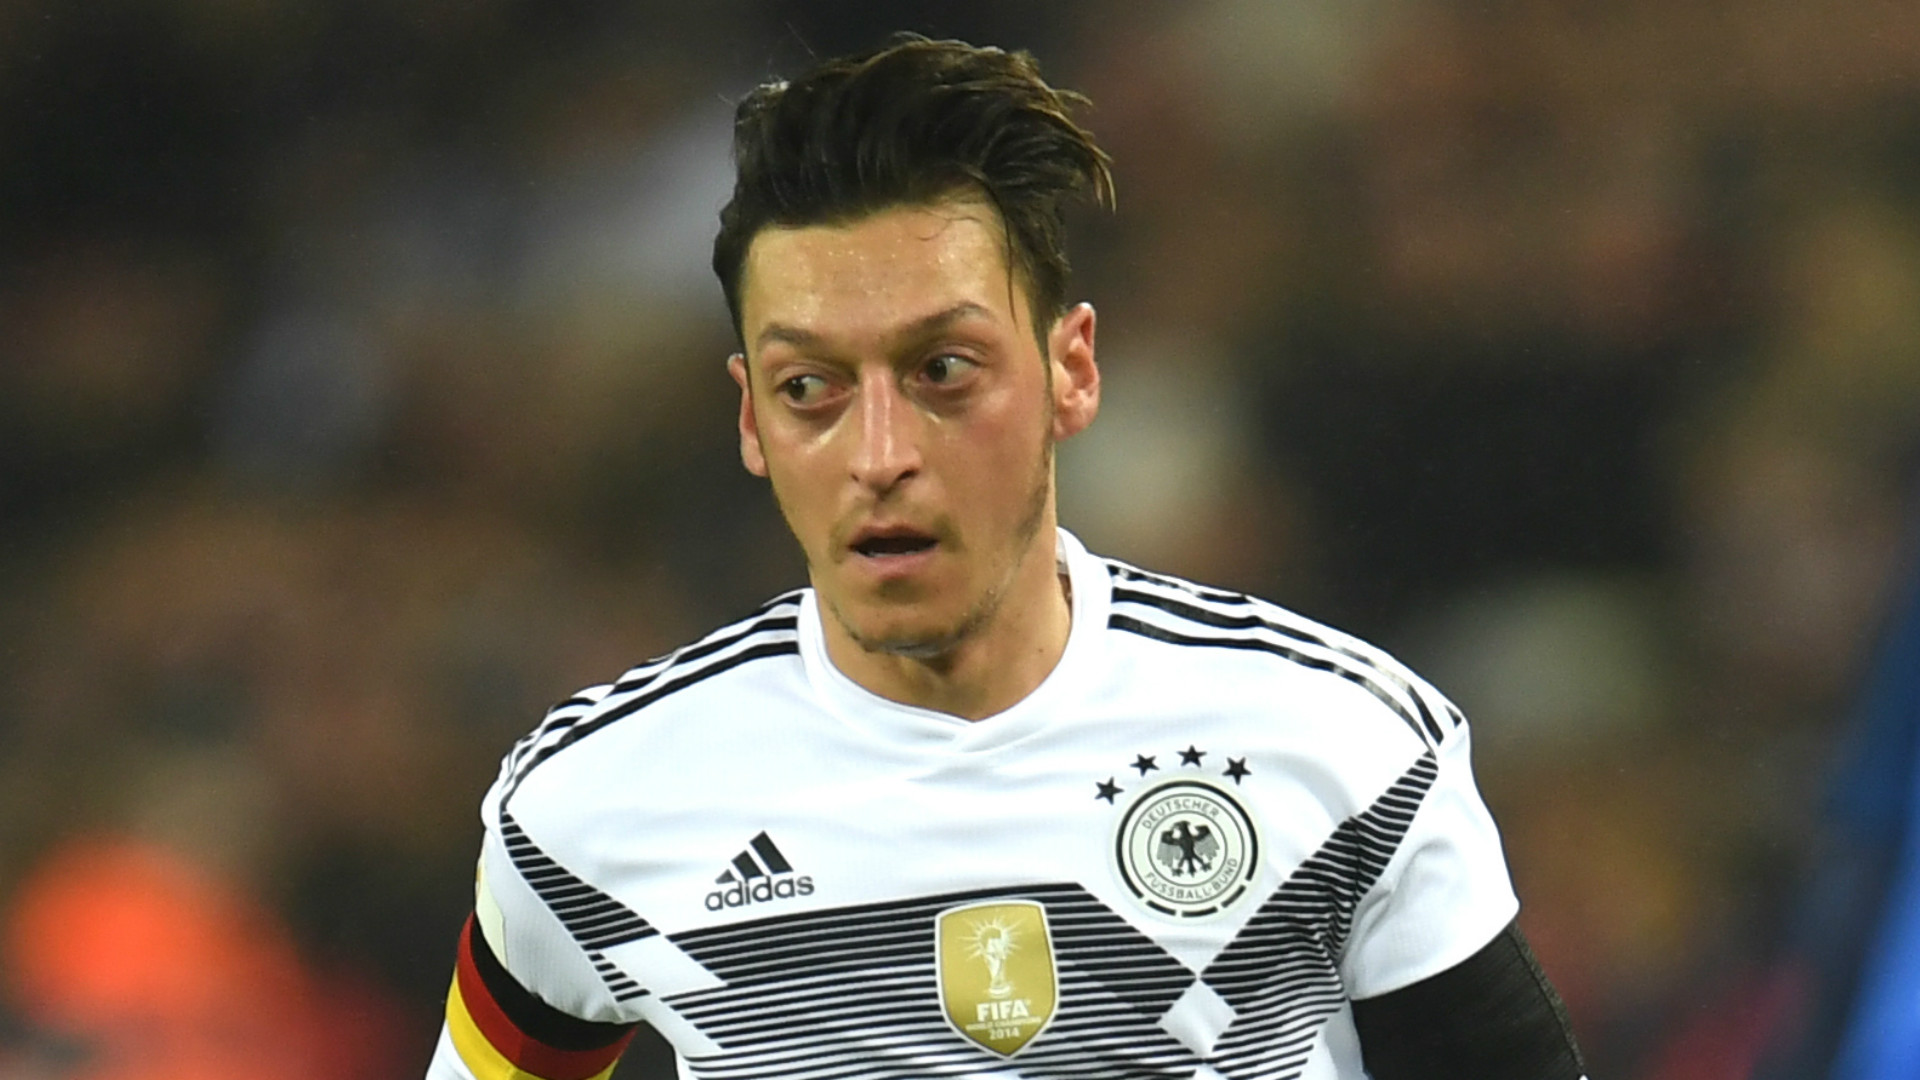 Mesut Ozil to miss Germany's final pre-World Cup friendly as 'precaution'